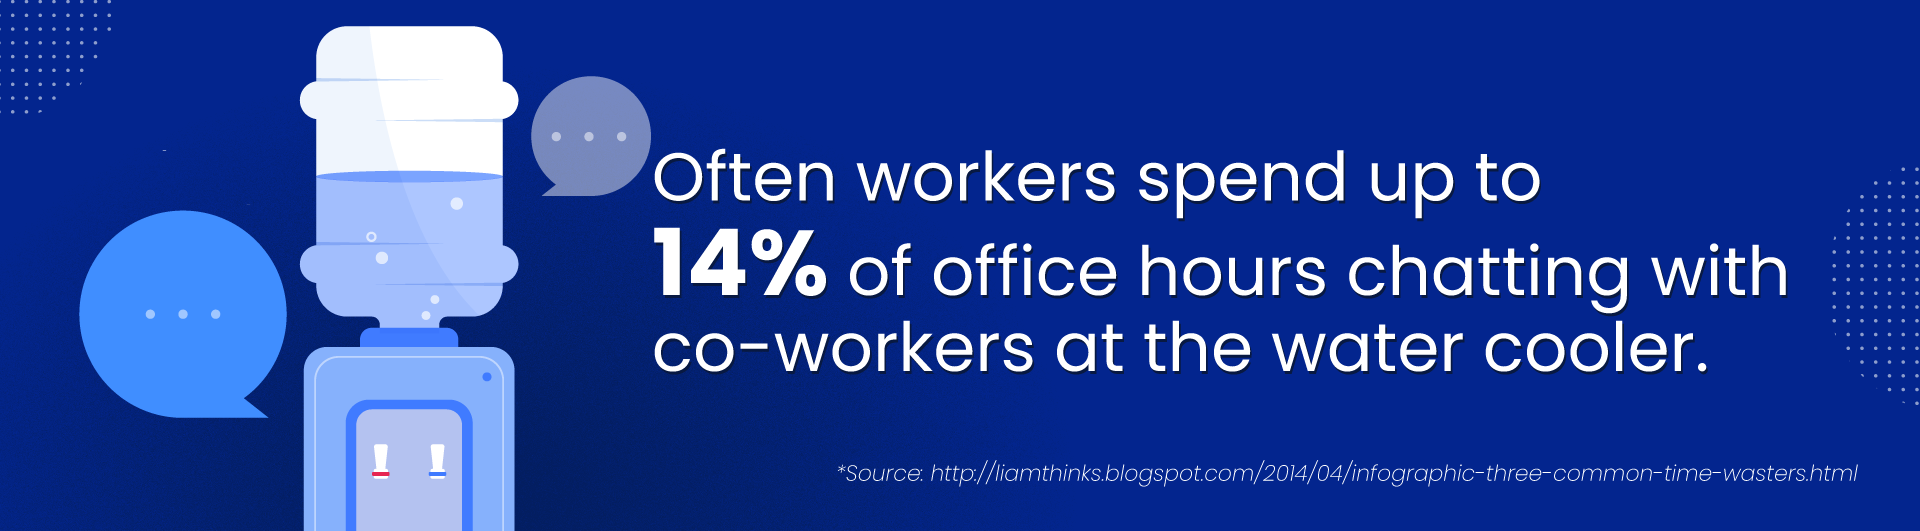 Often workers spend up to 14% of office hours chatting with co-workers at the water cooler